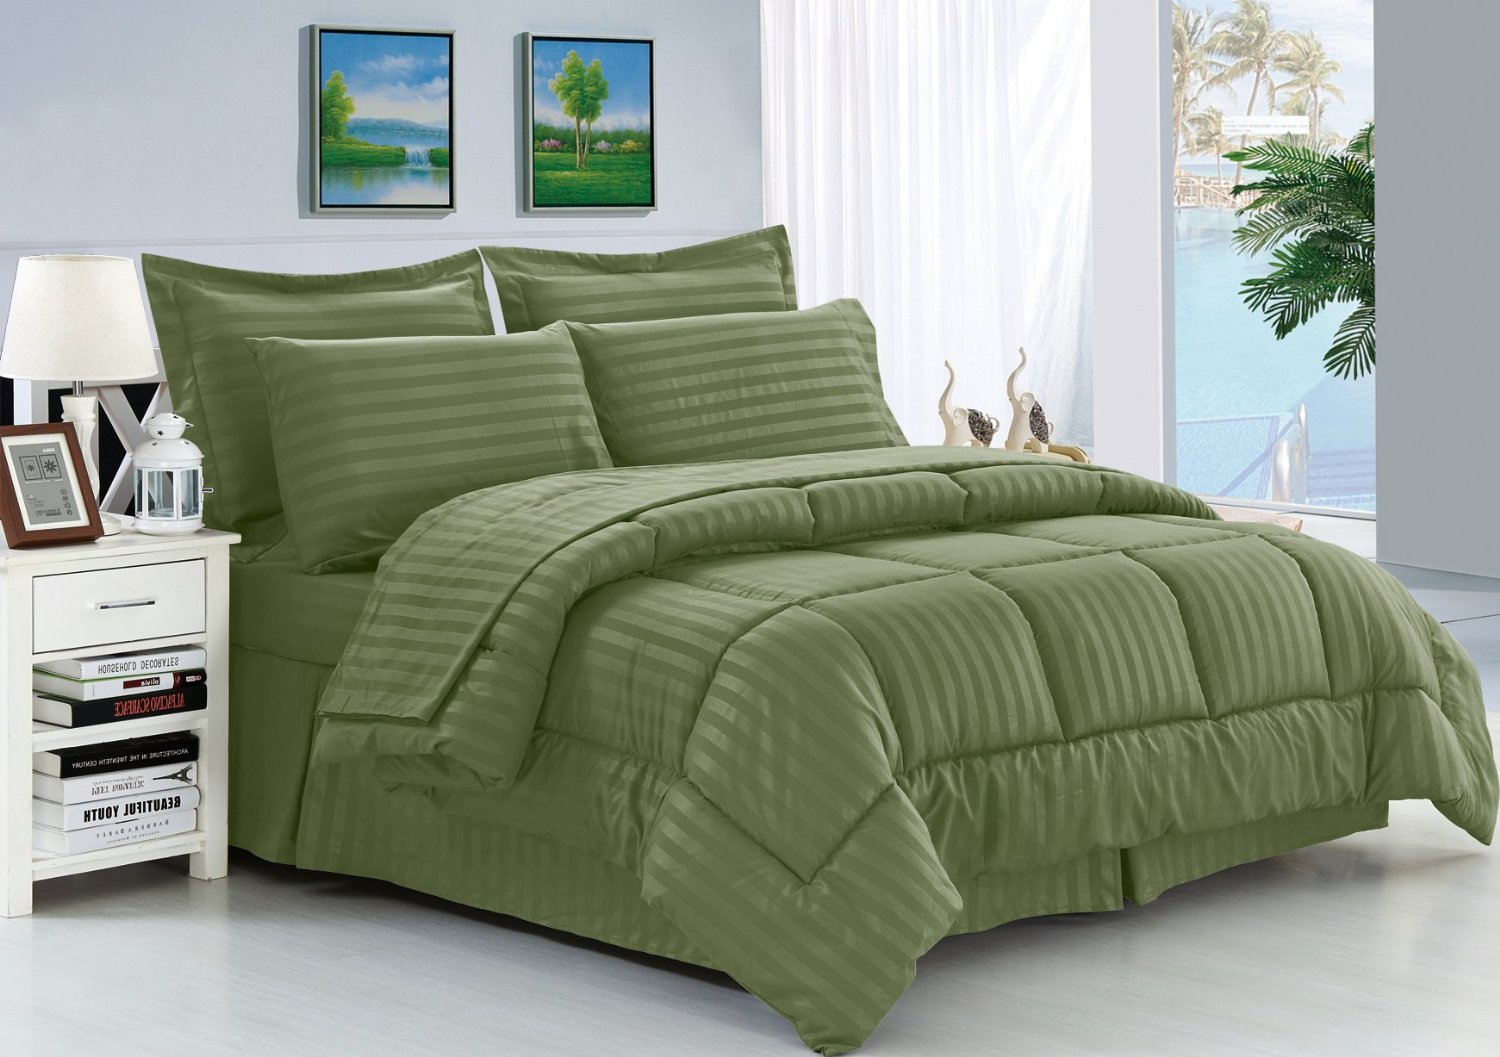 Luxury Silky Soft Dobby Stripe Bed-in-a-Bag 8-Piece Comforter Set